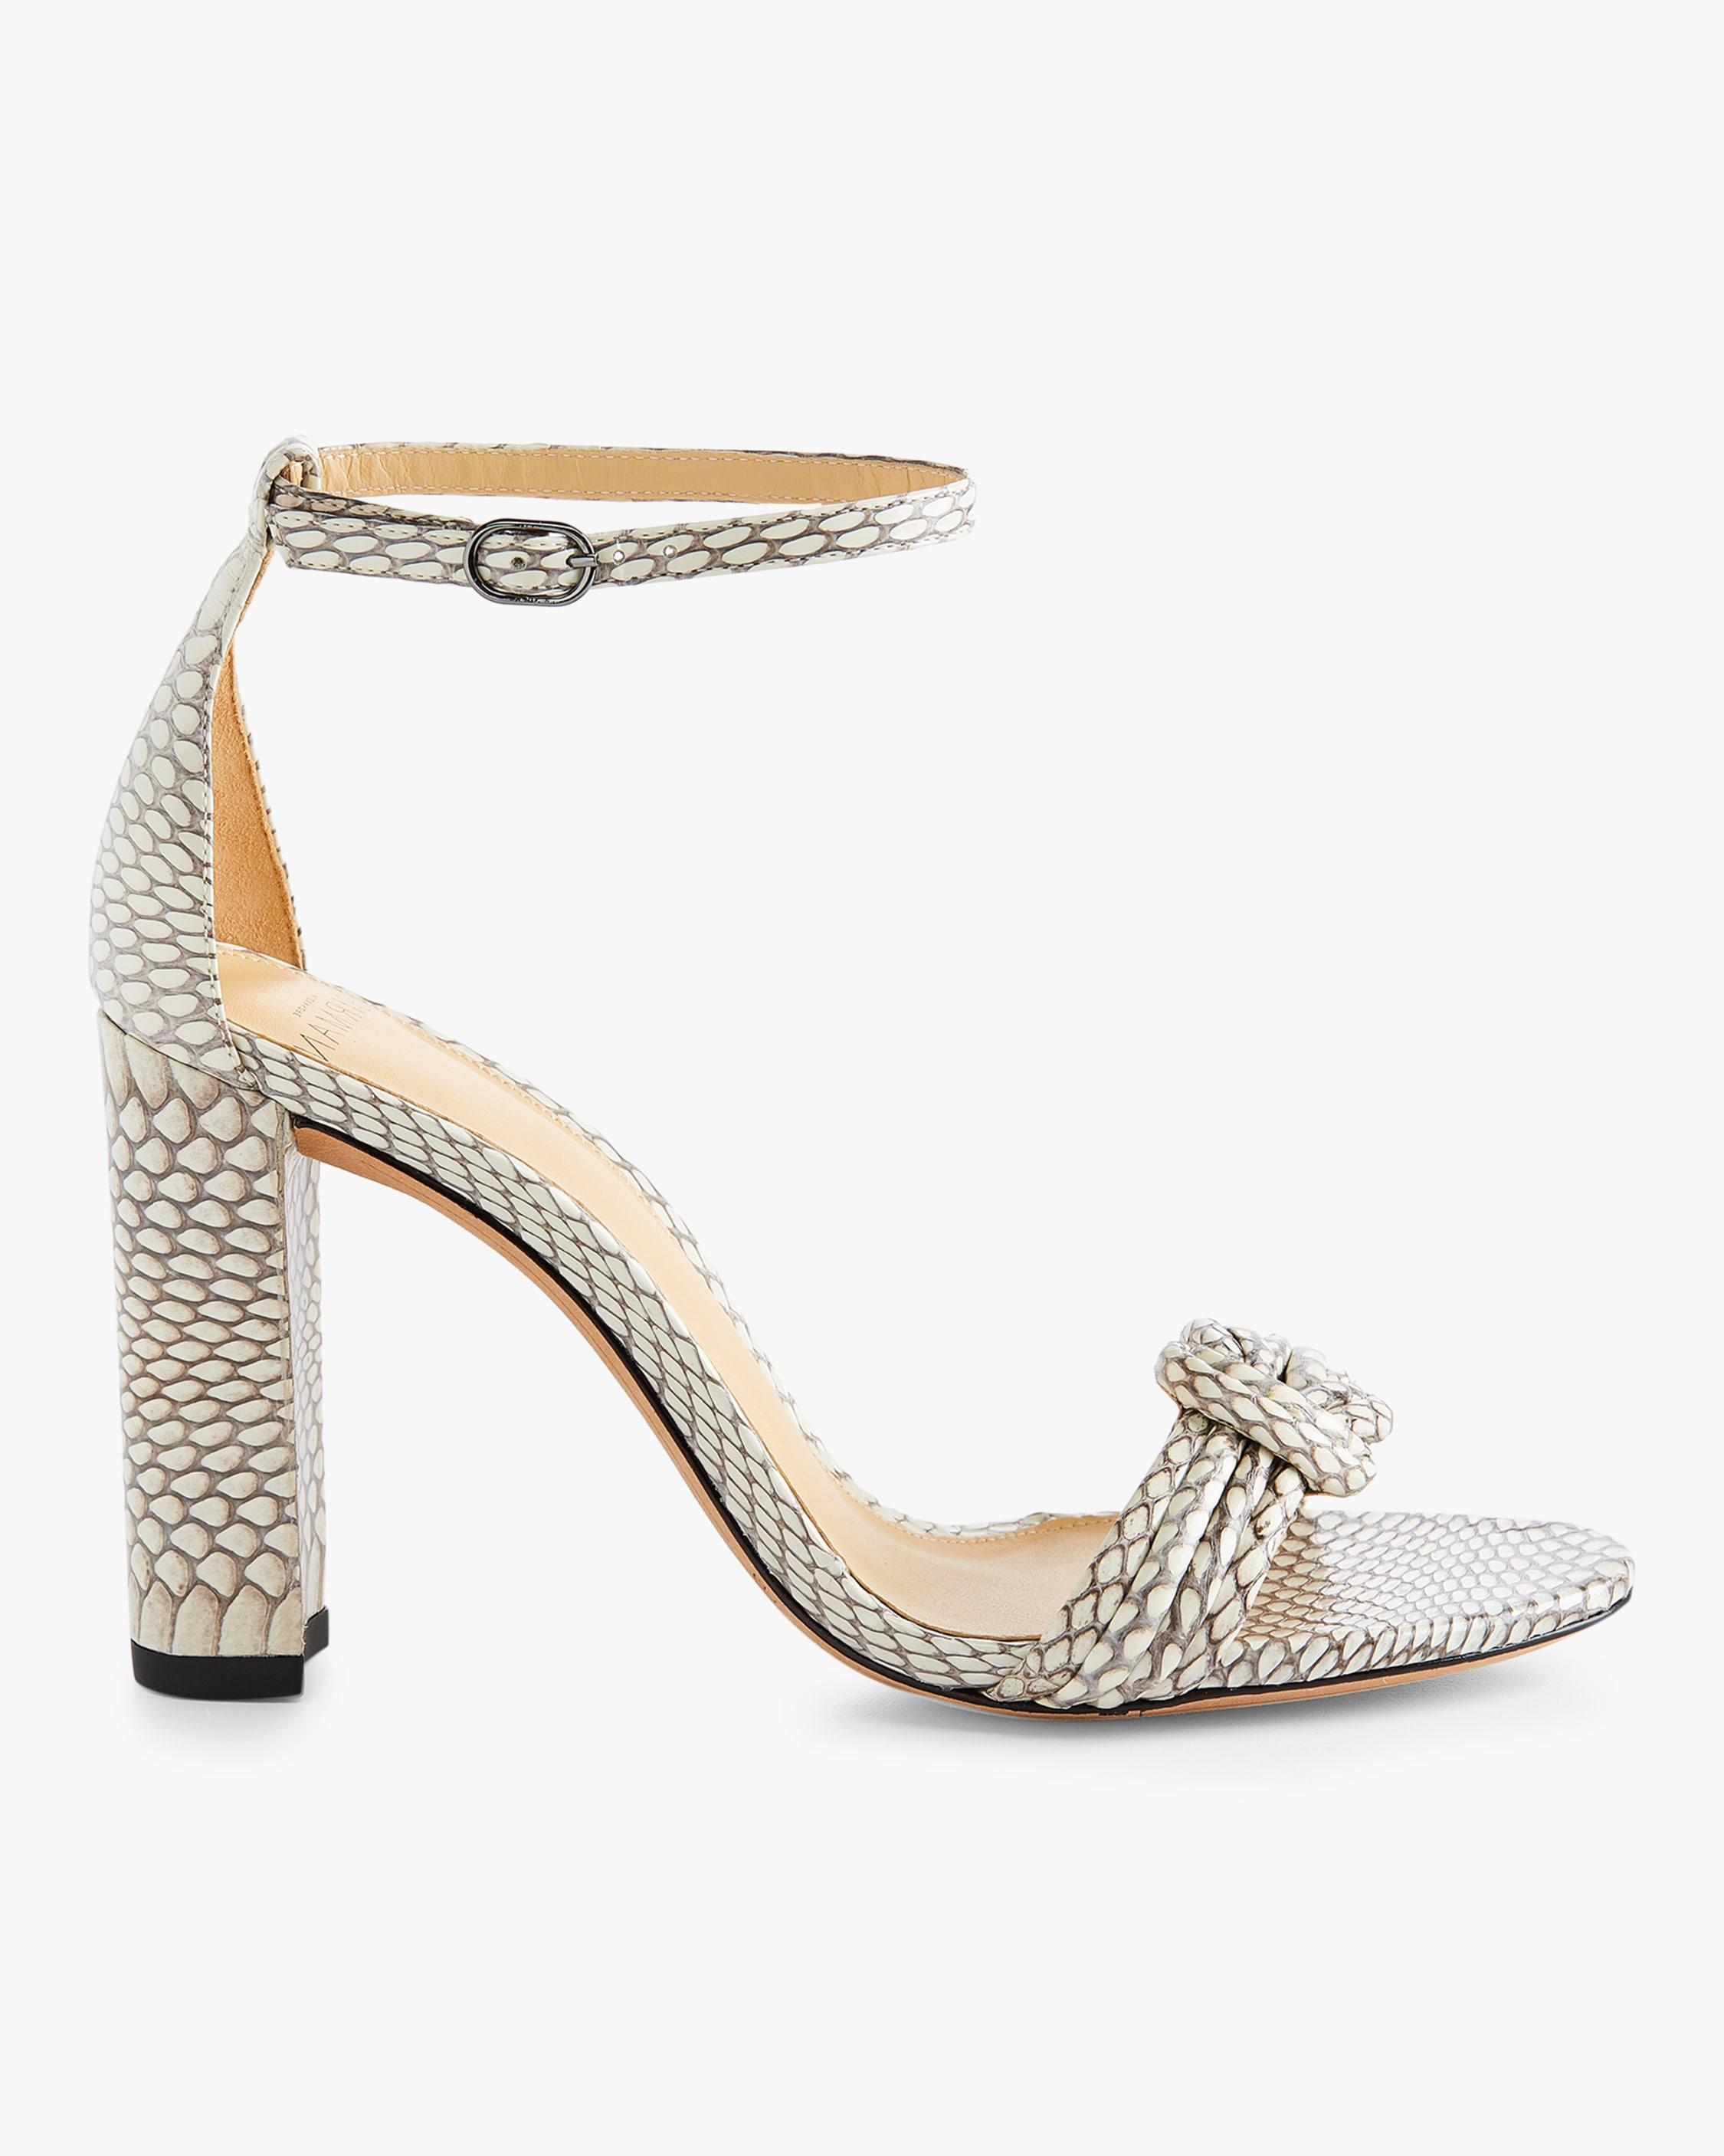 159d6ed3a8f Lyst - Alexandre Birman Vicky Sandal in Natural